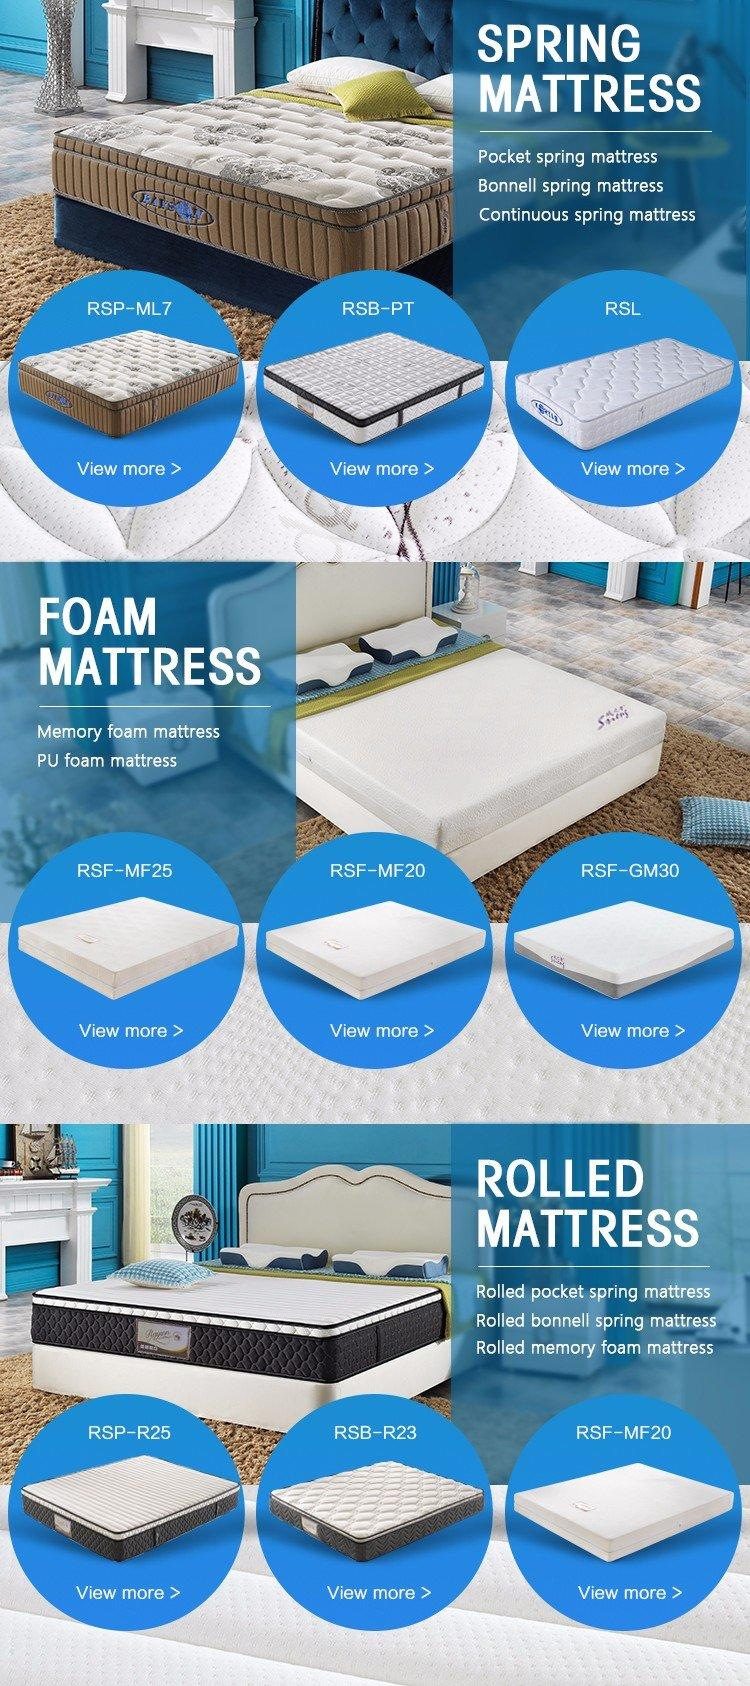 time fireproof massage continuous spring mattress princess Rayson Mattress